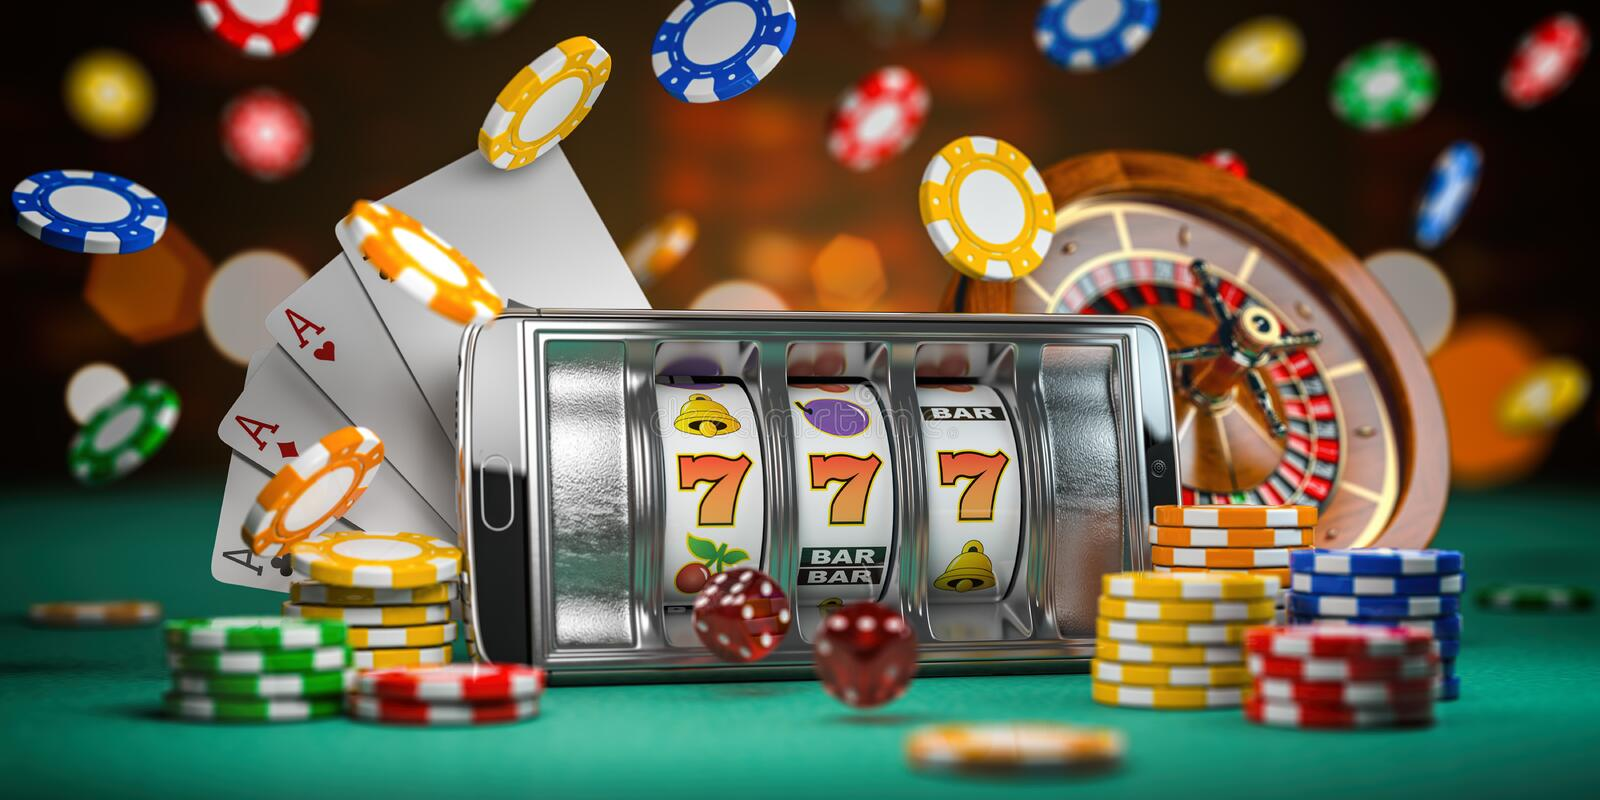 Online casino. Smartphone or mobile phone, slot machine, dice, cards and roulette on a green table in casino. 3d. Illustration vector illustration